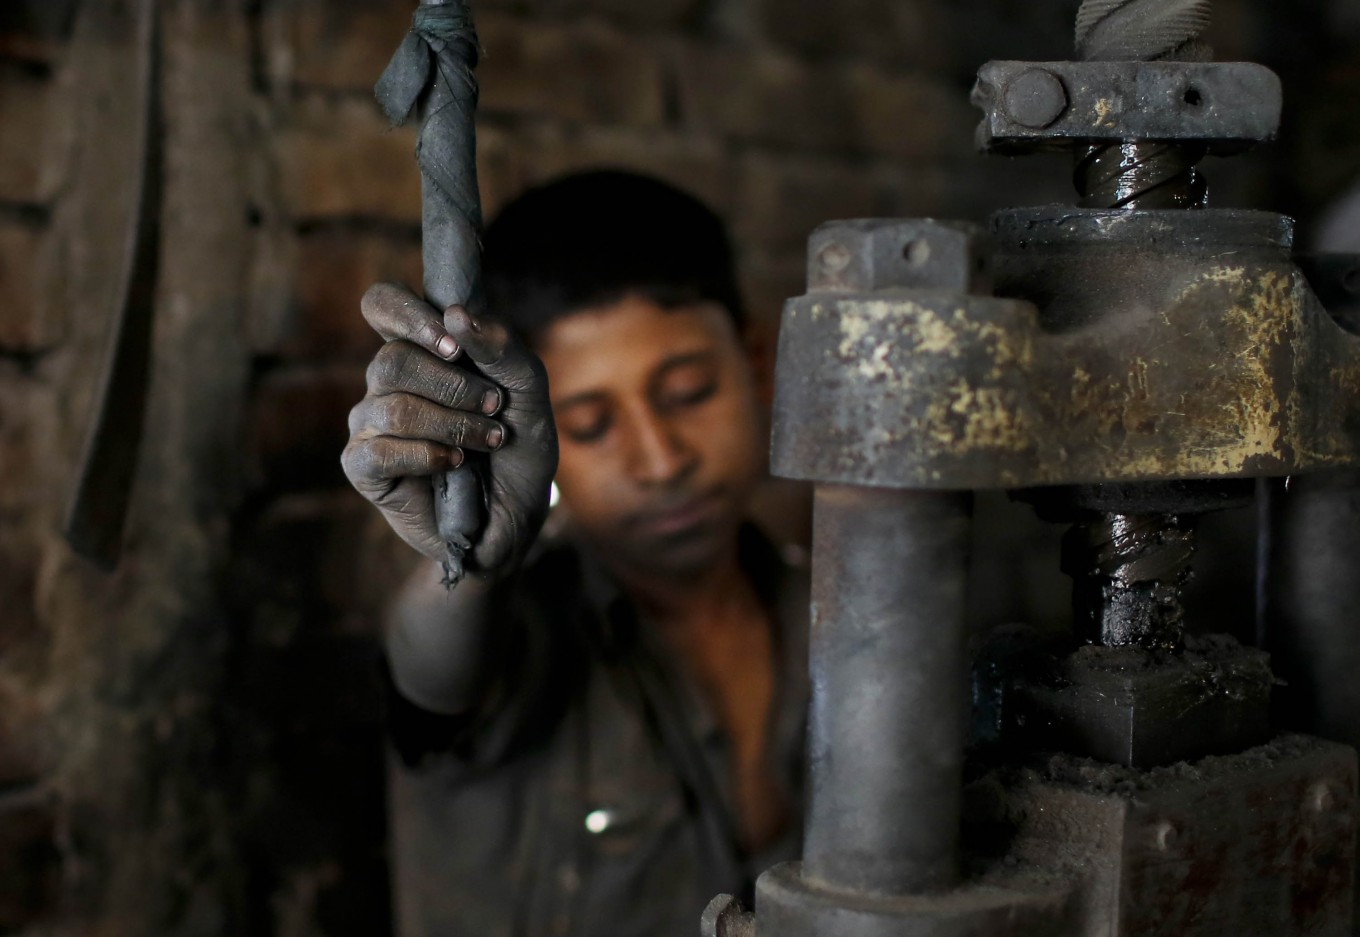 In this Sunday, June 12, 2016, photo, Abdullah, 12, works at a metal factory in Dhaka, Bangladesh. AP Photo/ A.M. Ahad